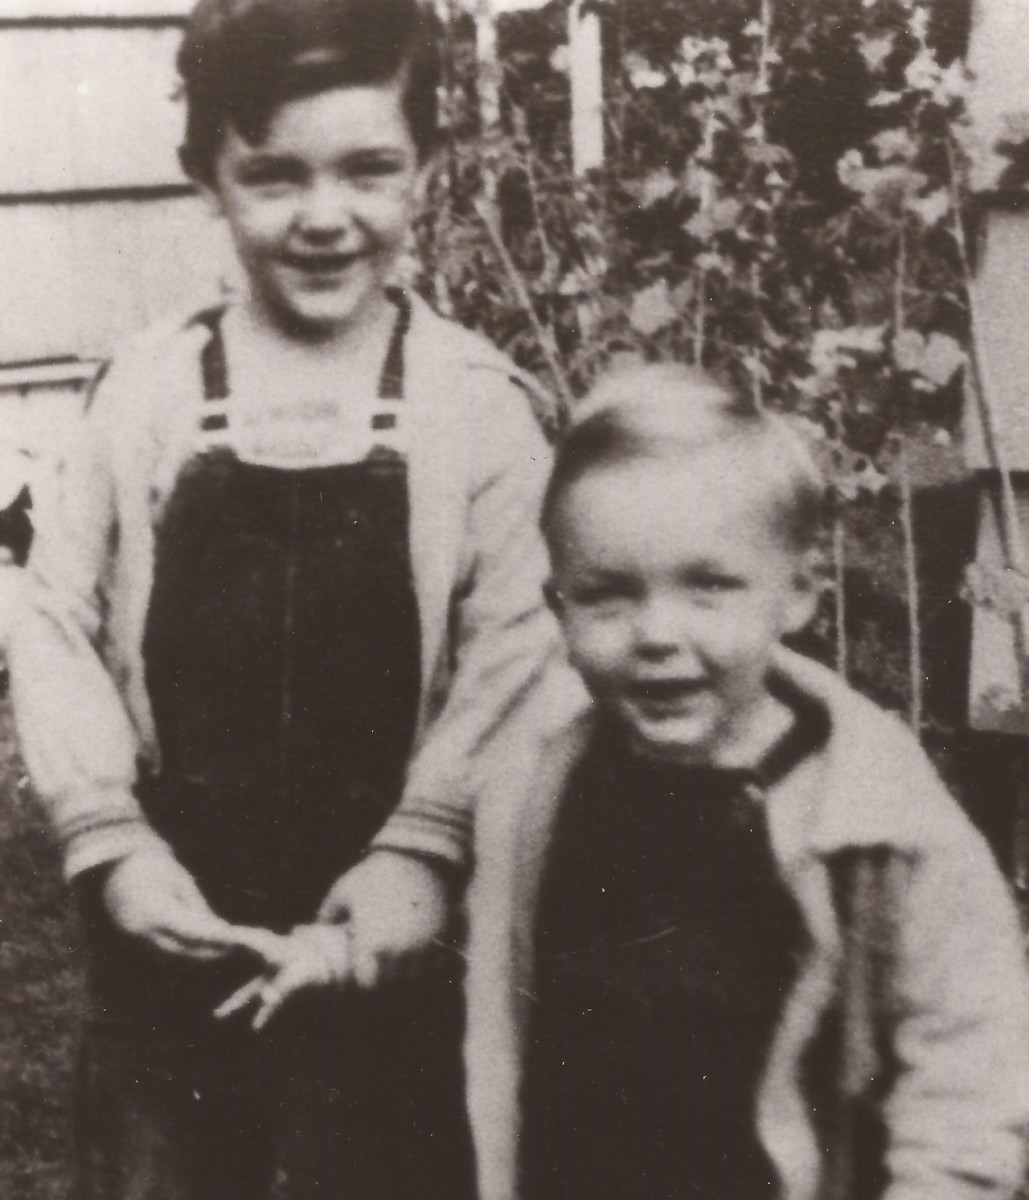 Dick Scobee (left) and his younger brother, Jim.